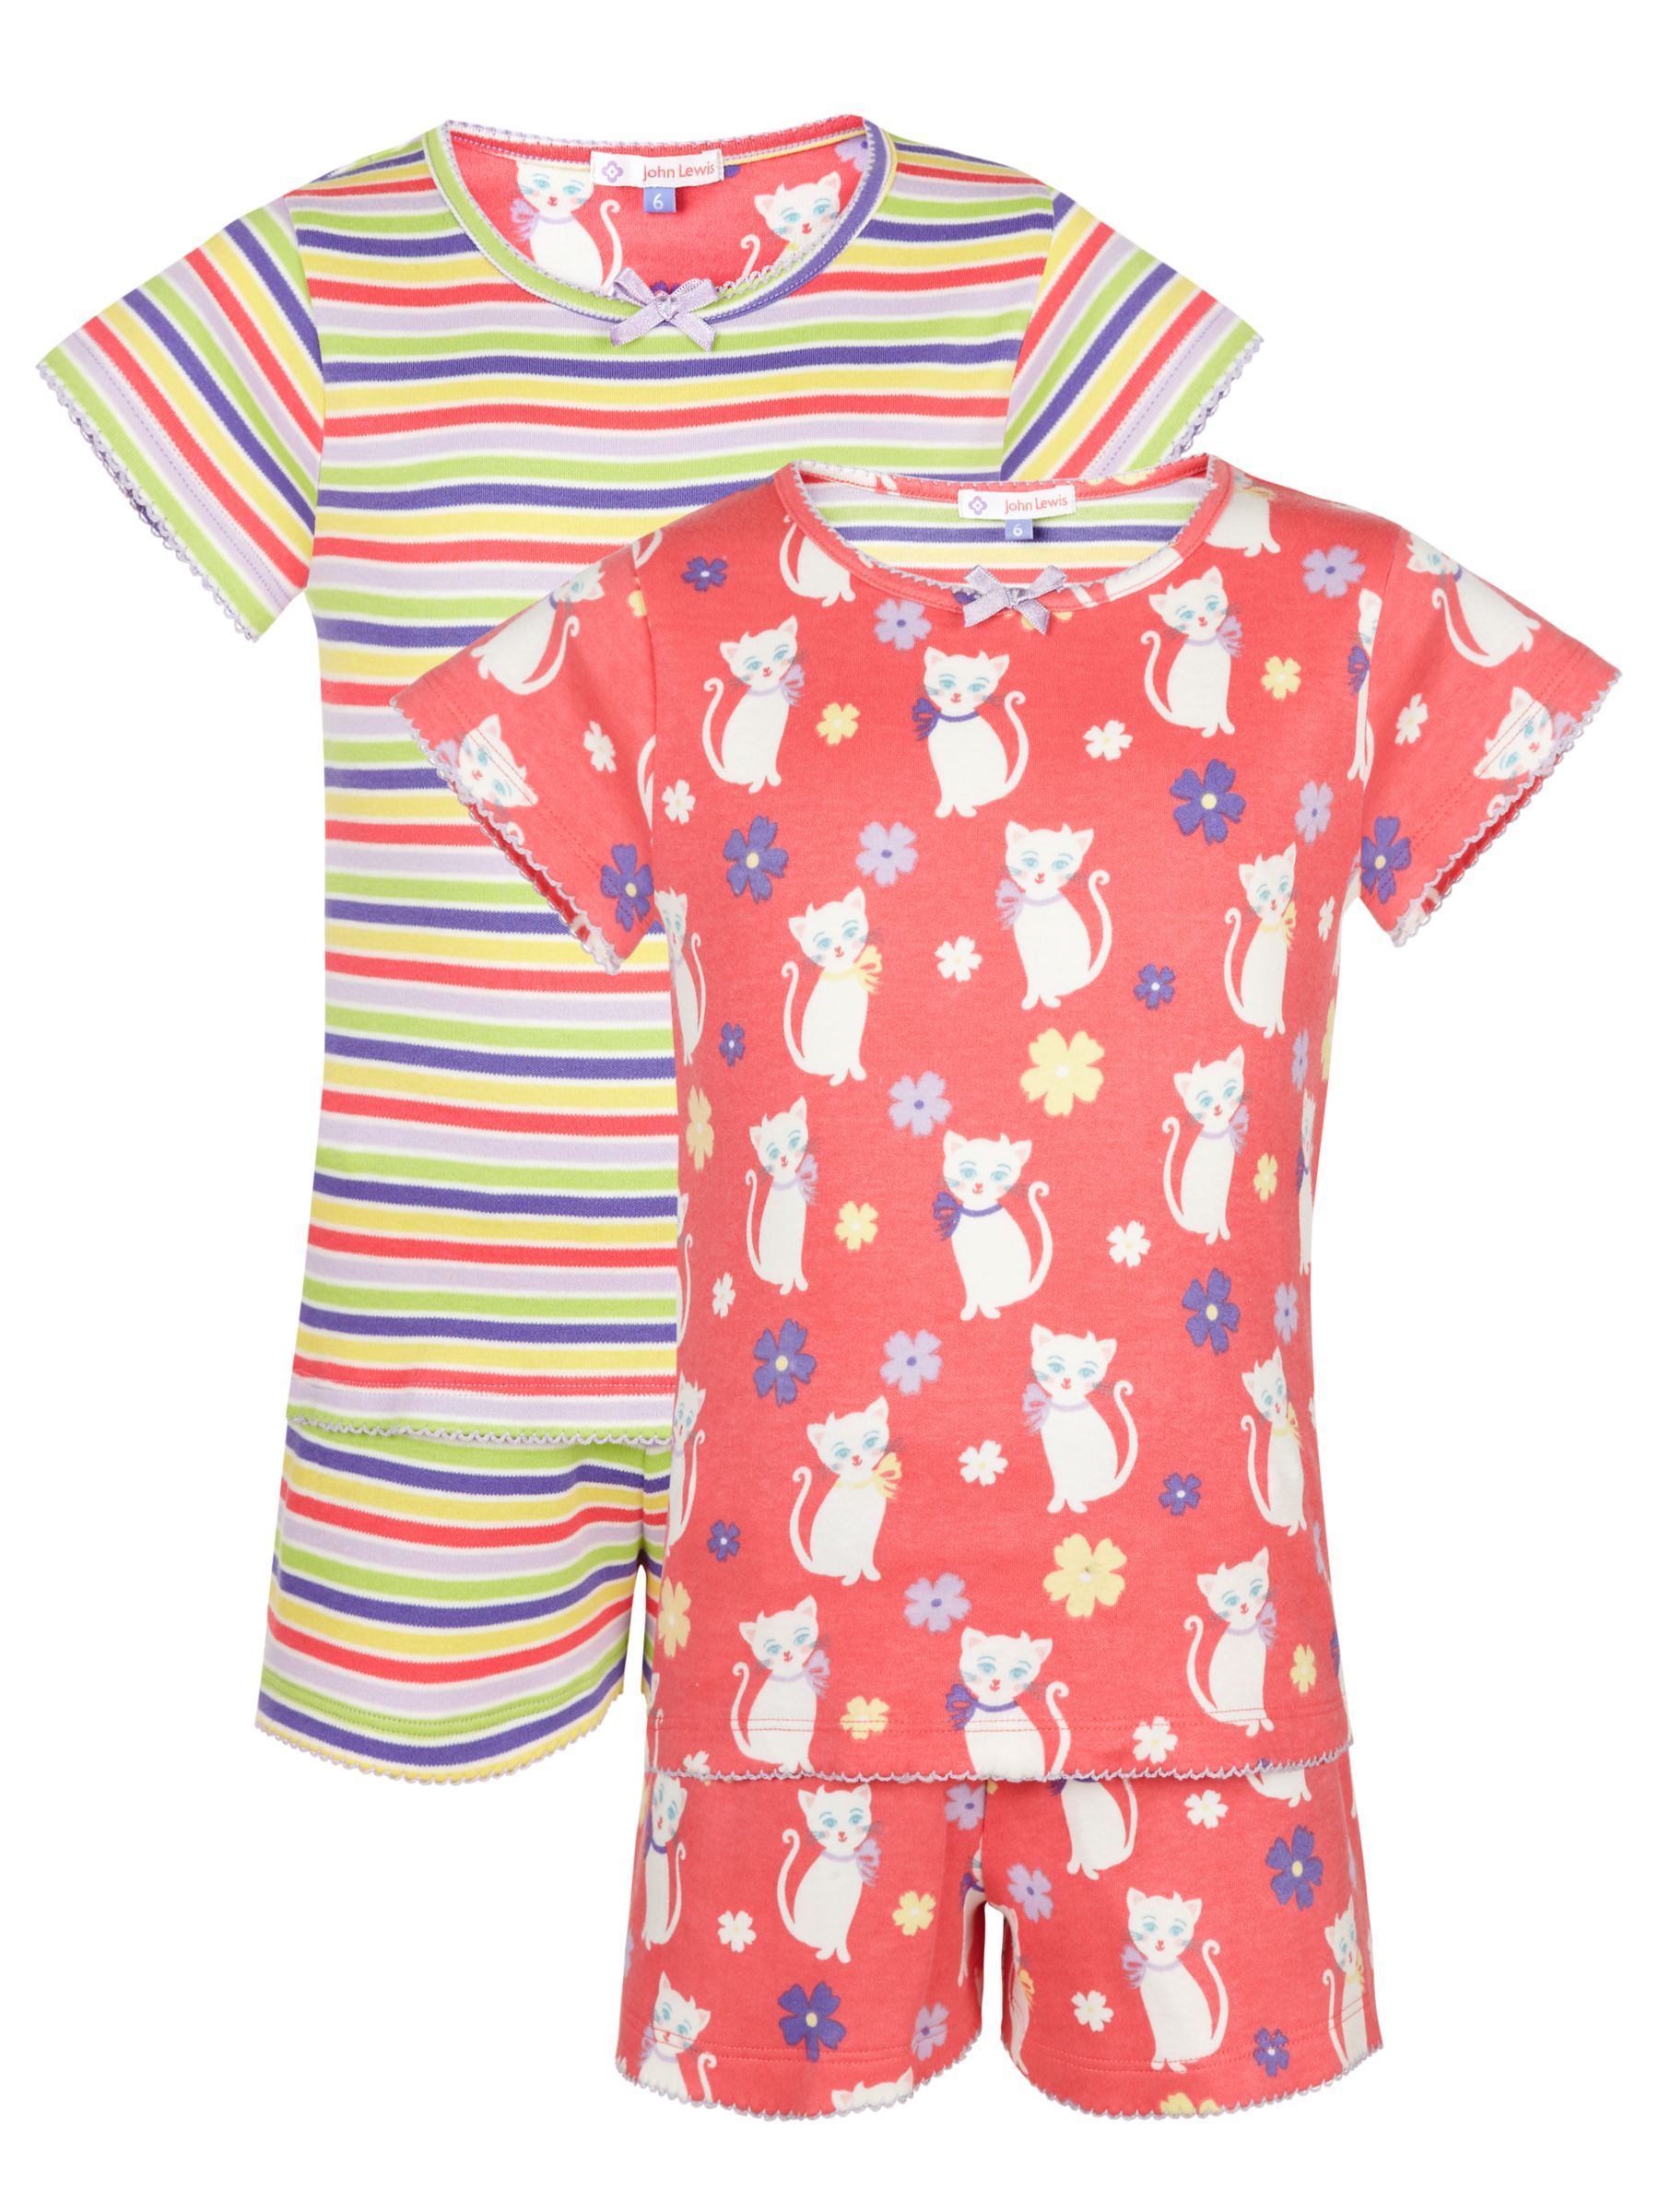 John Lewis Girl Cat Shortie Pyjamas, Pack of 2, Multi